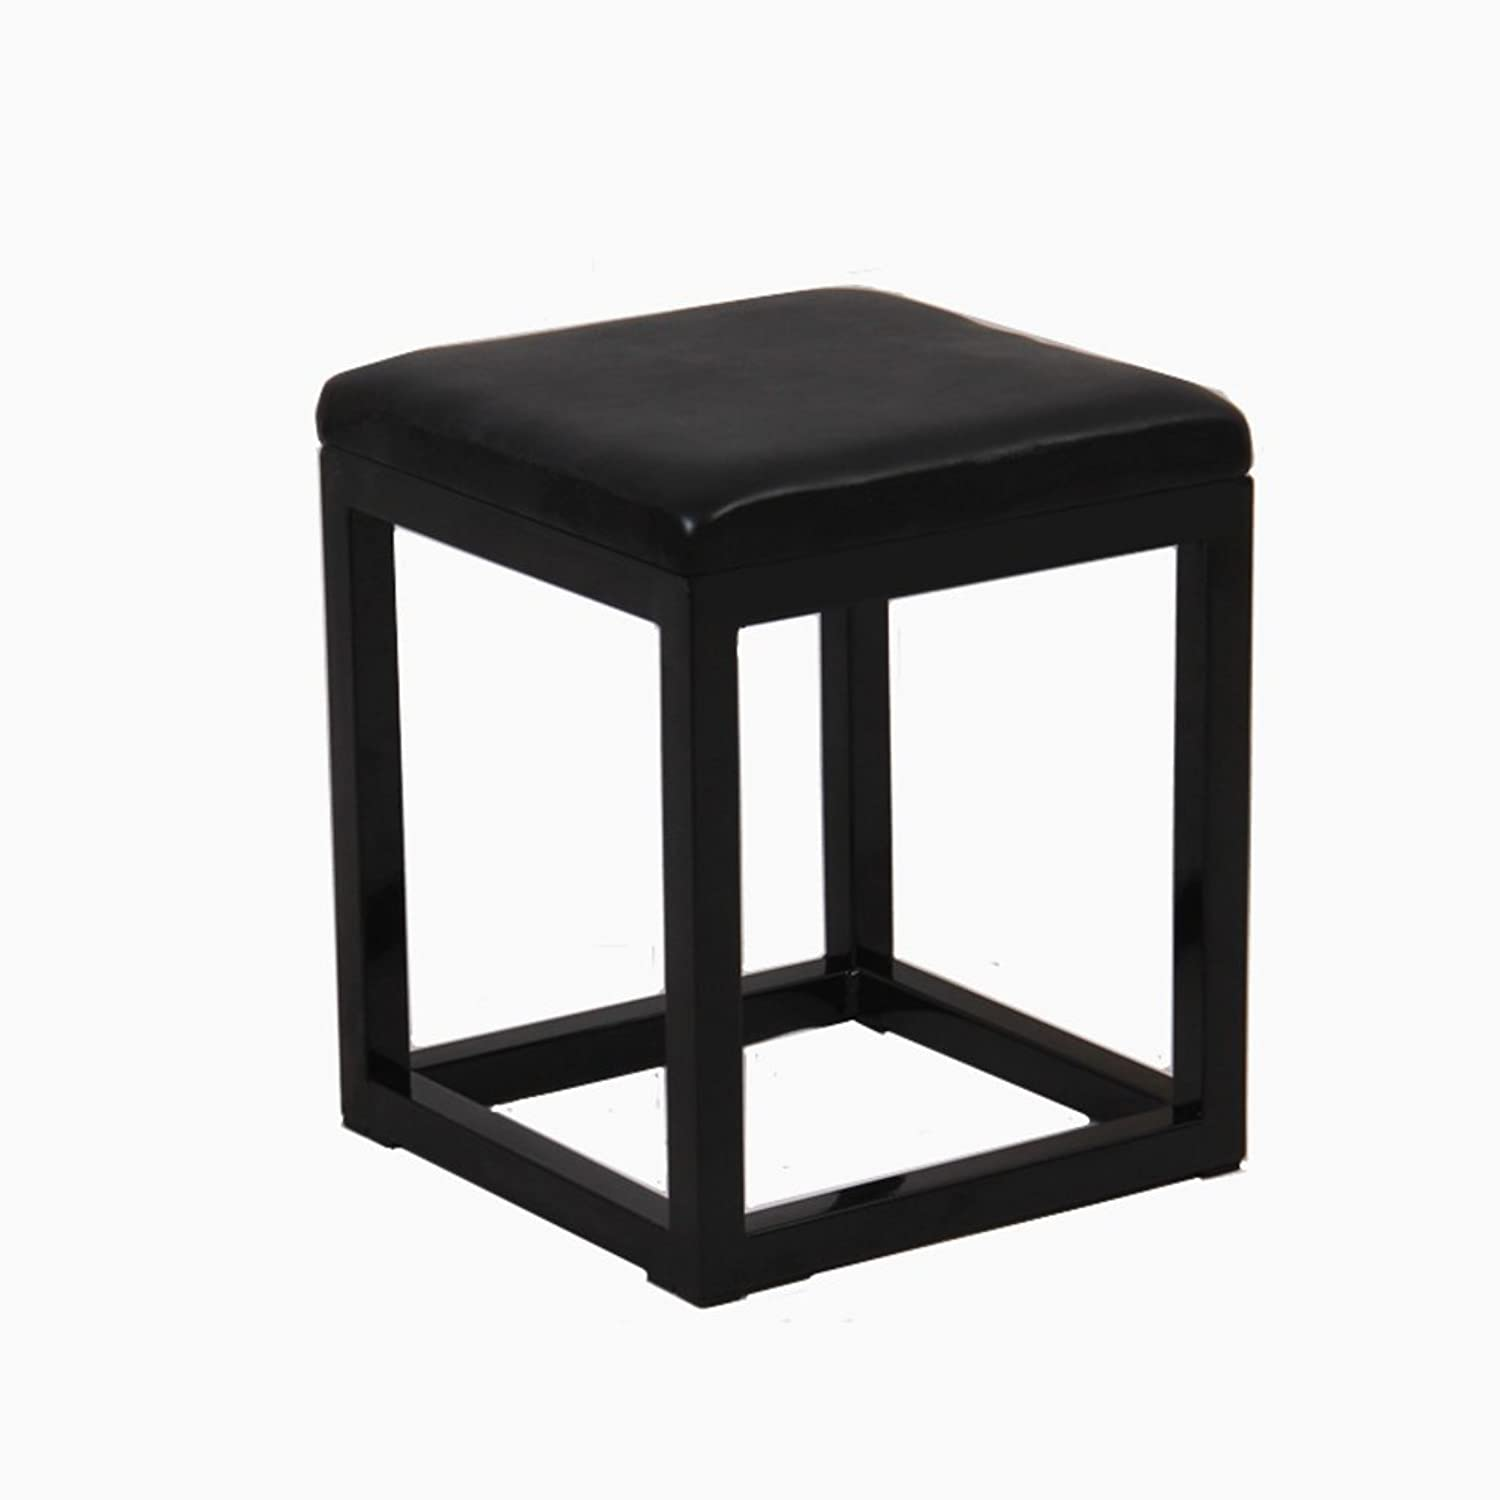 Nordic Style Leather Wrought Iron Stool,Metal Multifunctional Simple Modern Minimalist Durable Easy Storage Living Room Bedroom Home Decoration Stool-A 30x30x39cm